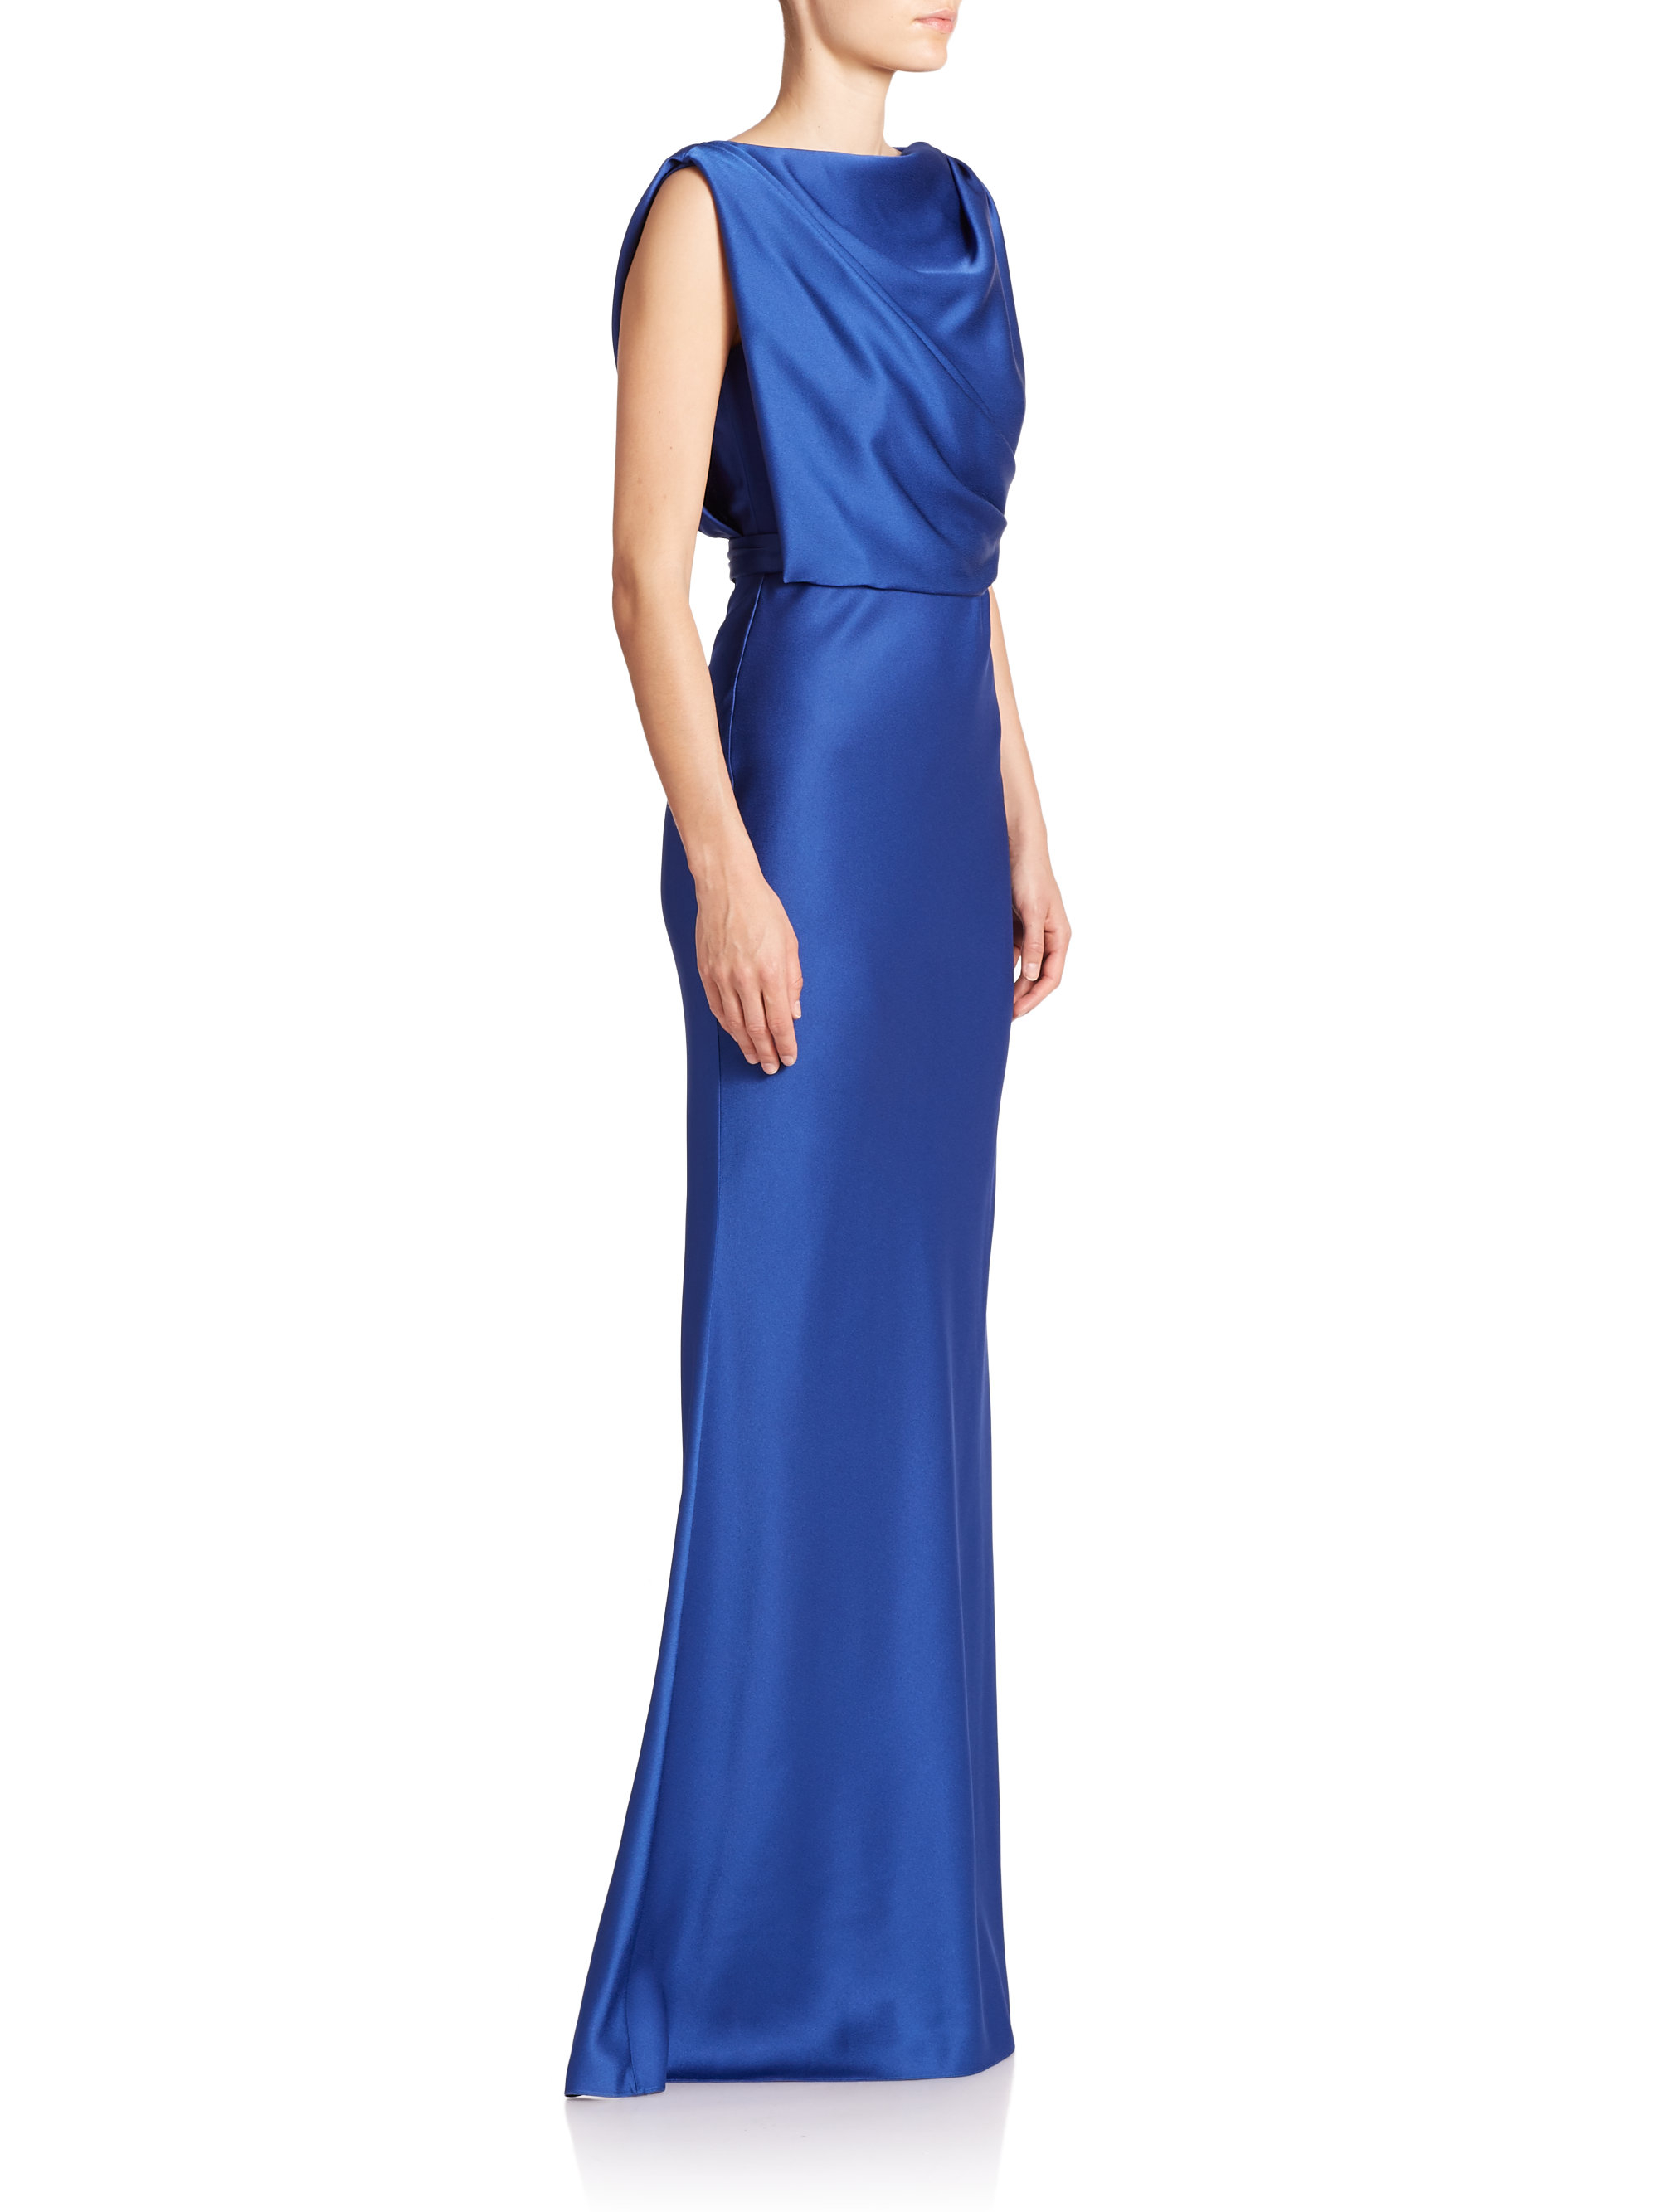 Jason WuWomen's Blue Draped Satin Gown